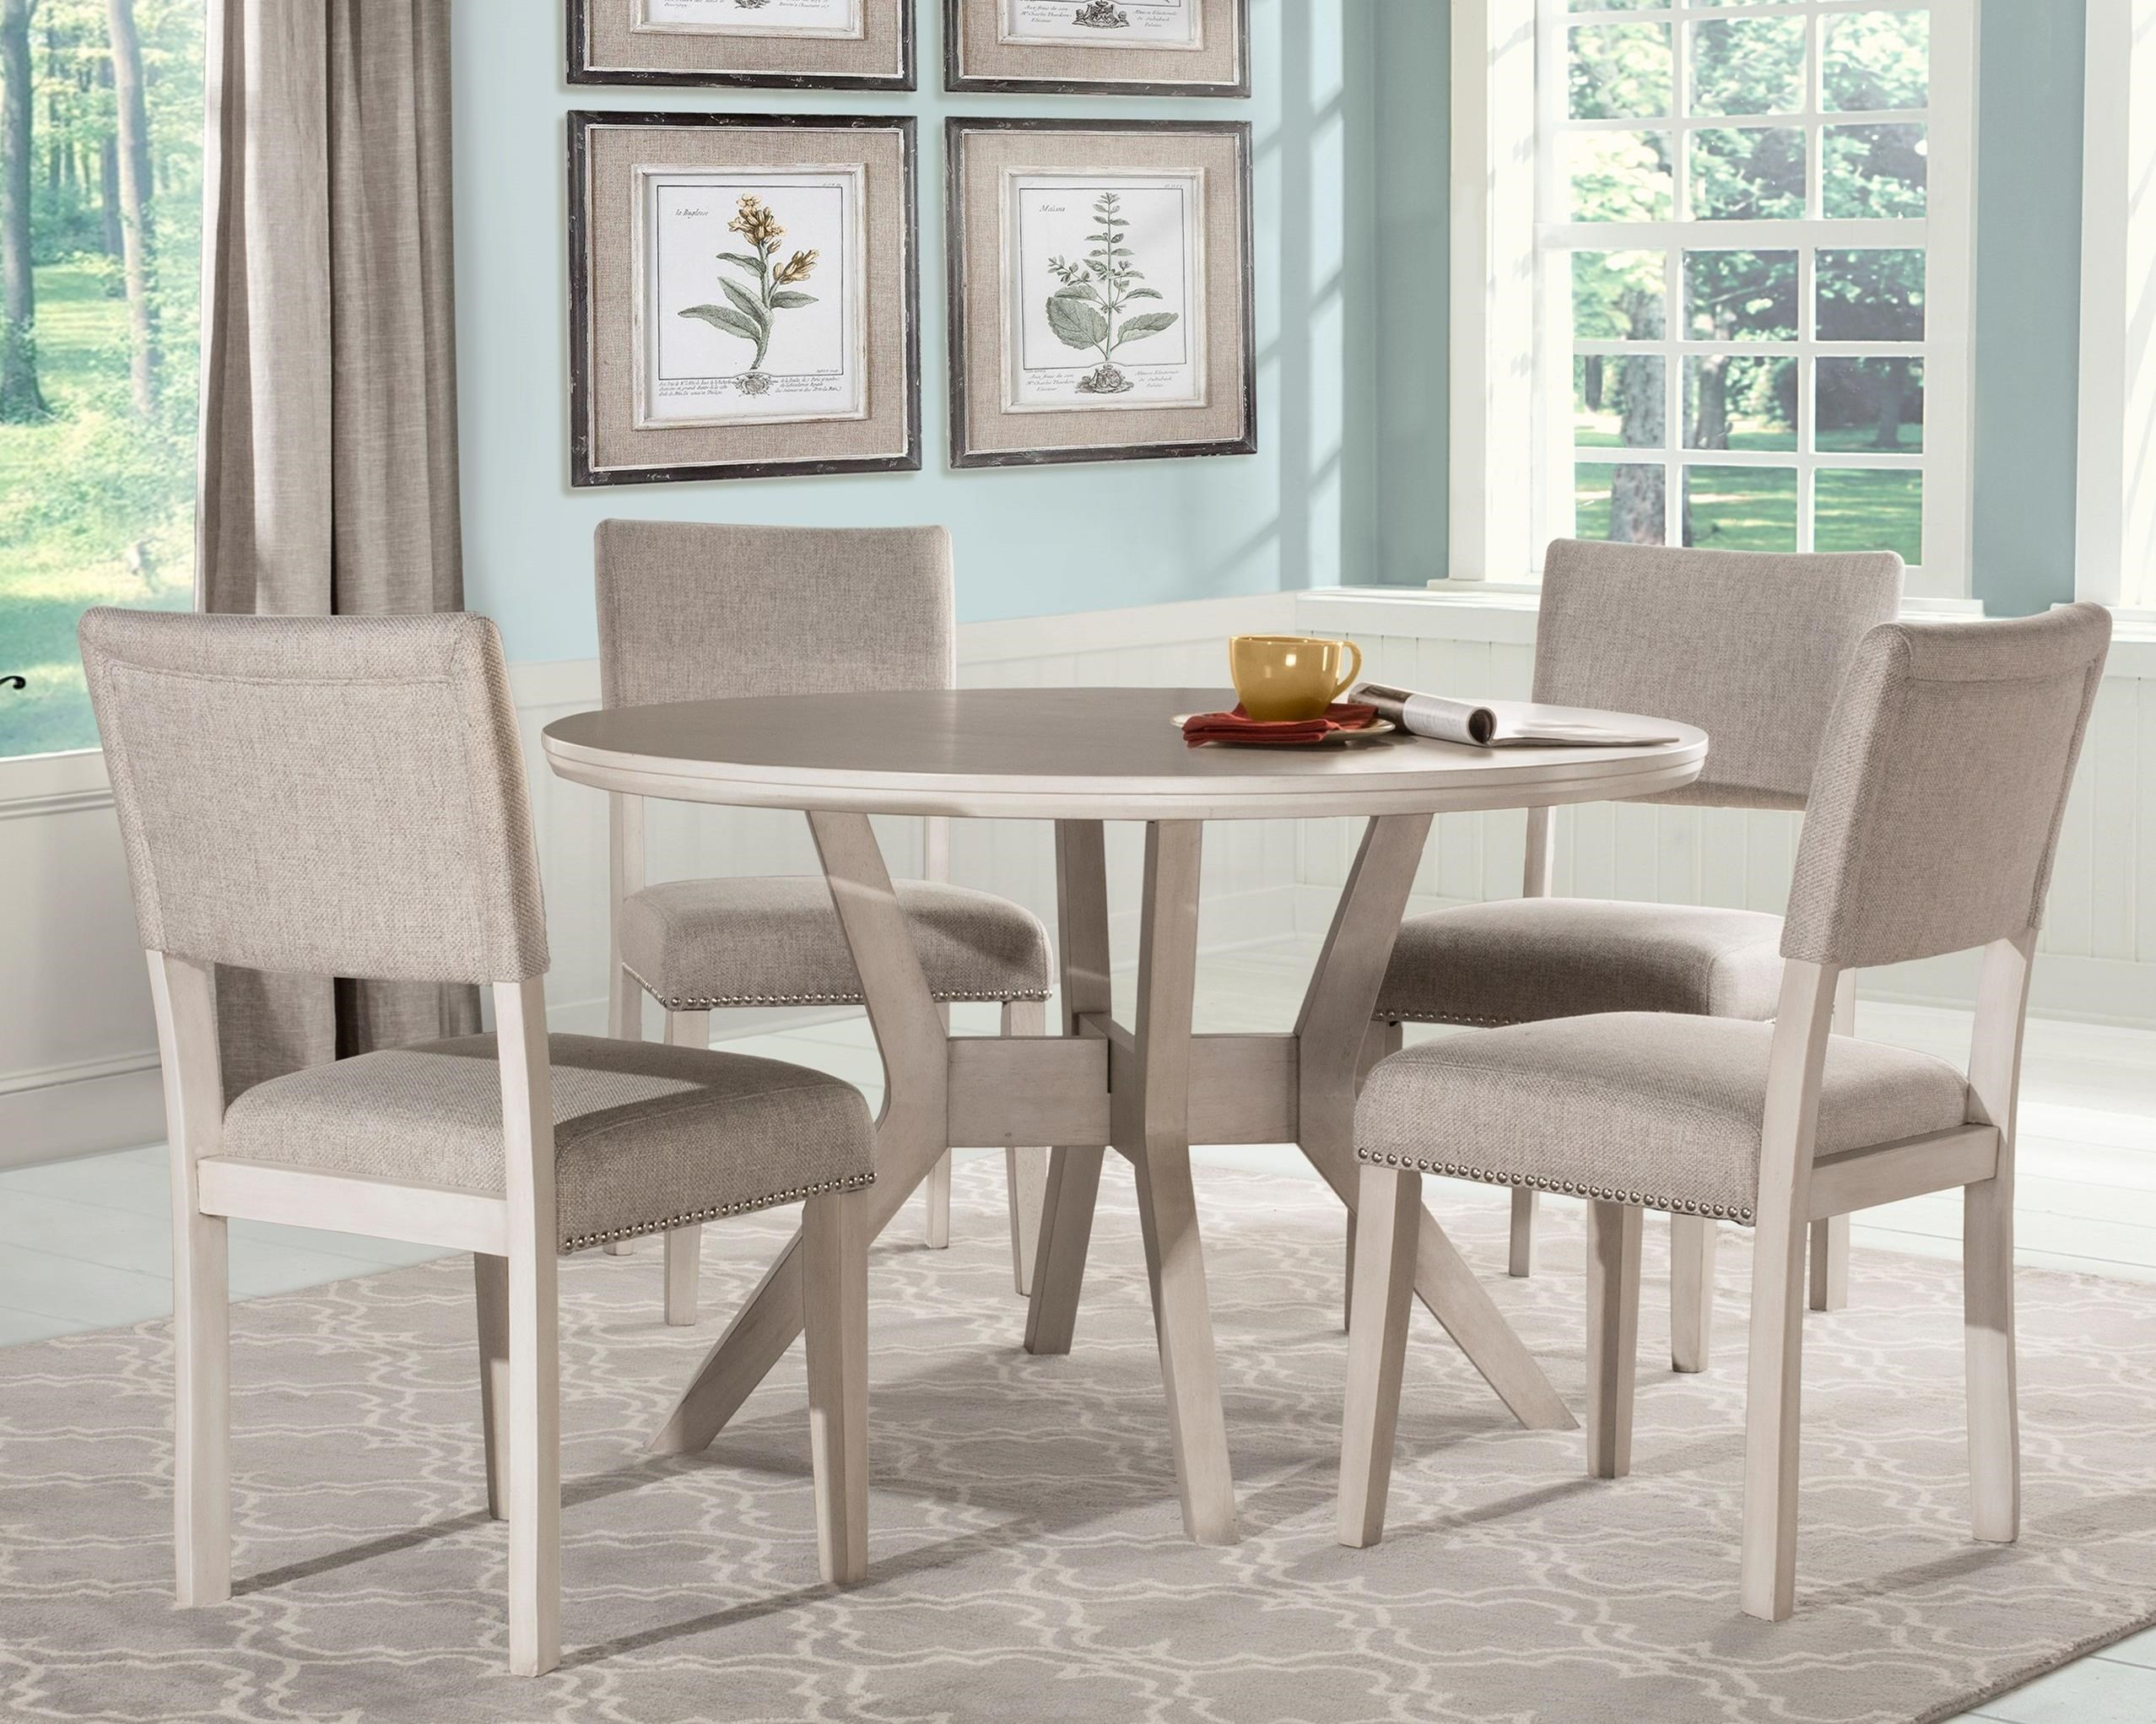 Hillsdale Elder Park Round Dining Table Set With 4 Chairs Conlin S Furniture Dining 5 Piece Sets